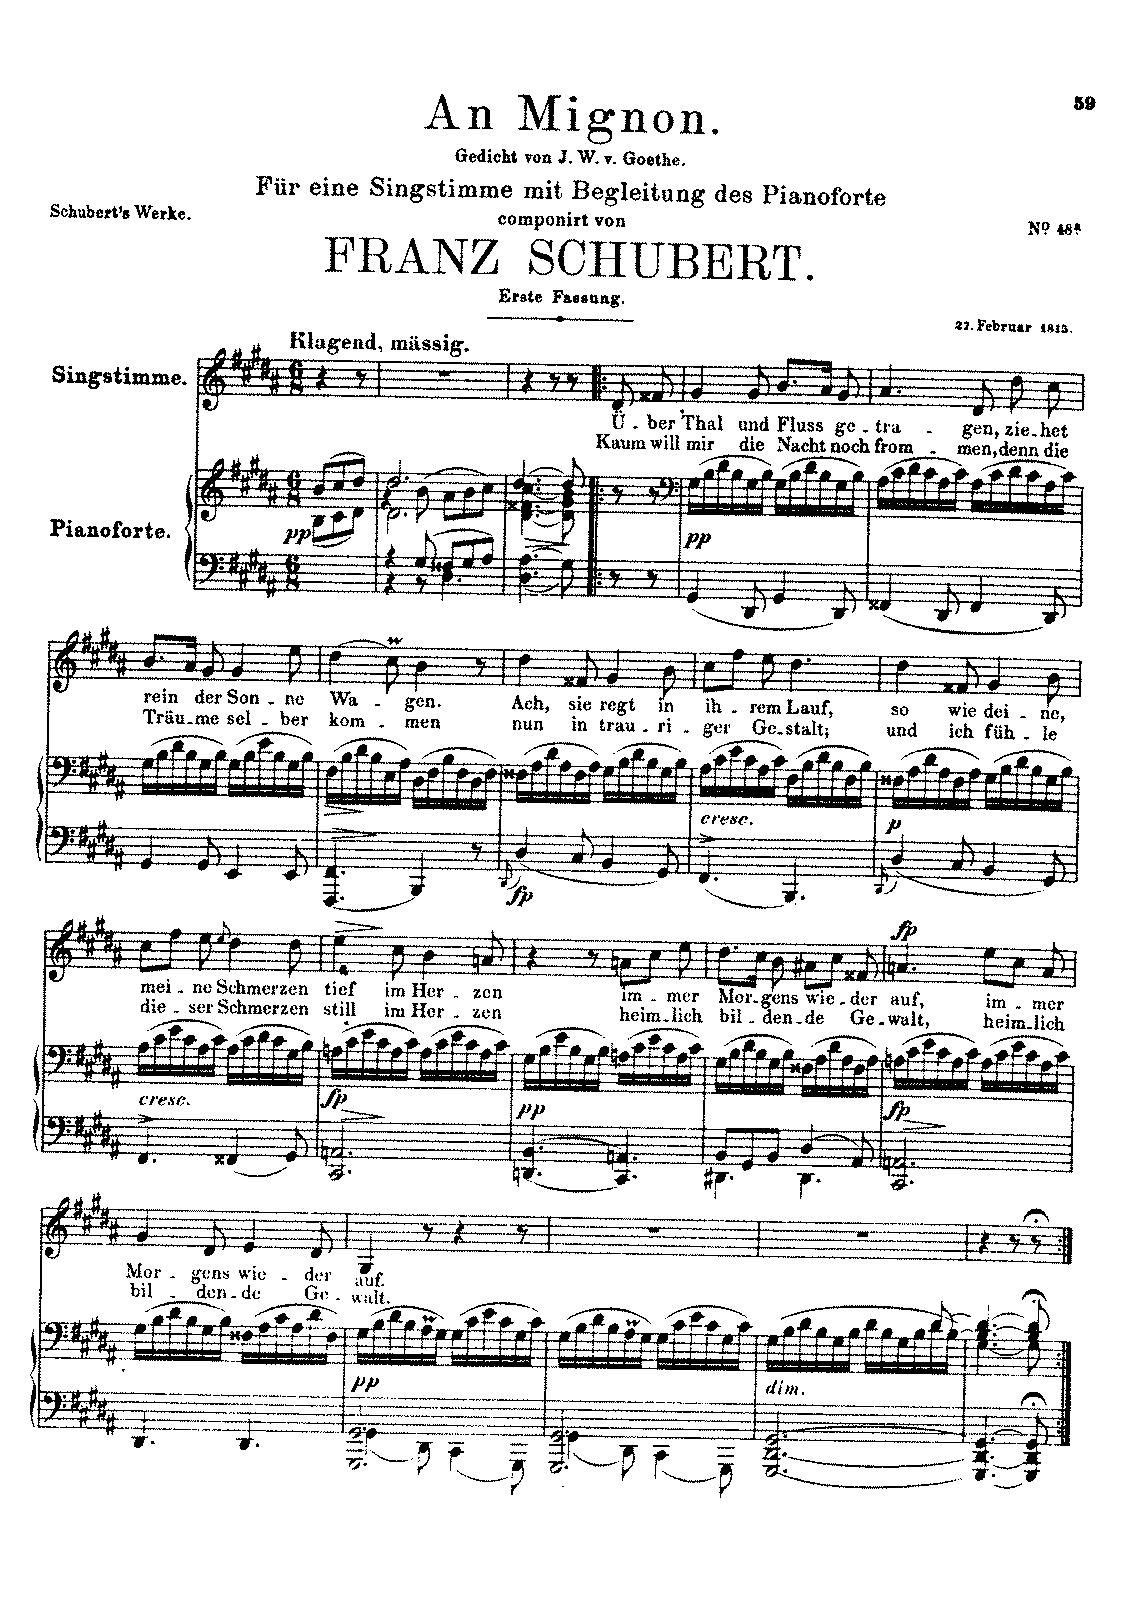 SchubertD161 An Mignon 1st version.pdf